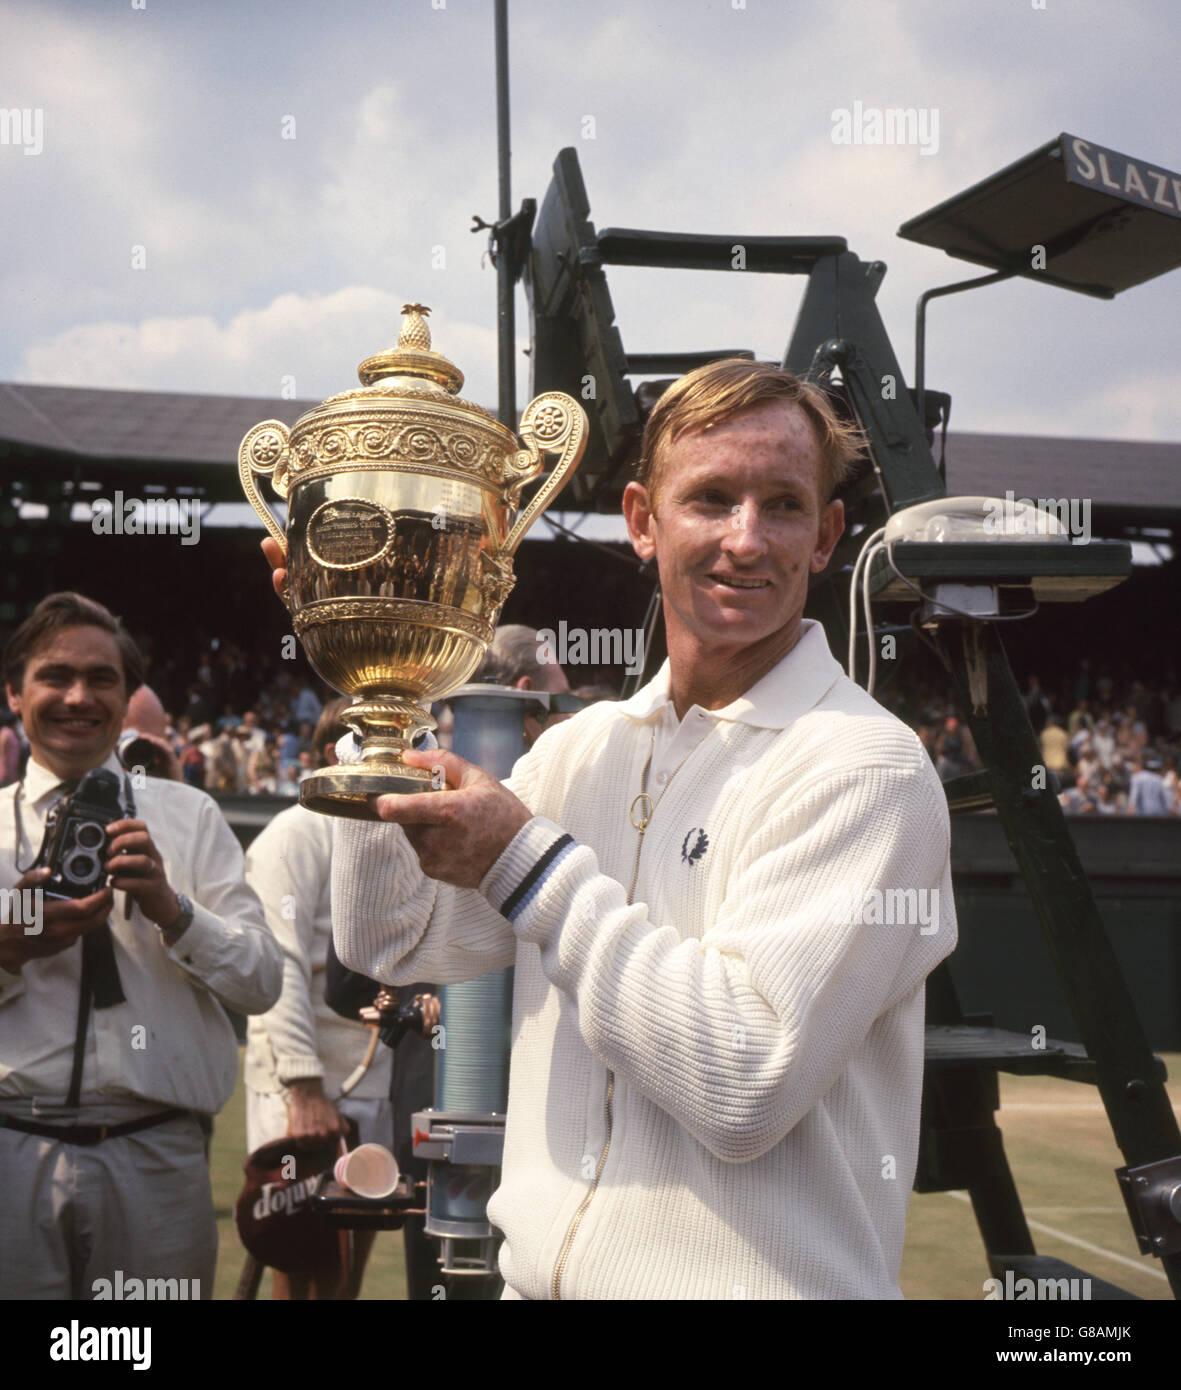 Tennis 1968 Wimbledon Championships Men s Singles Final